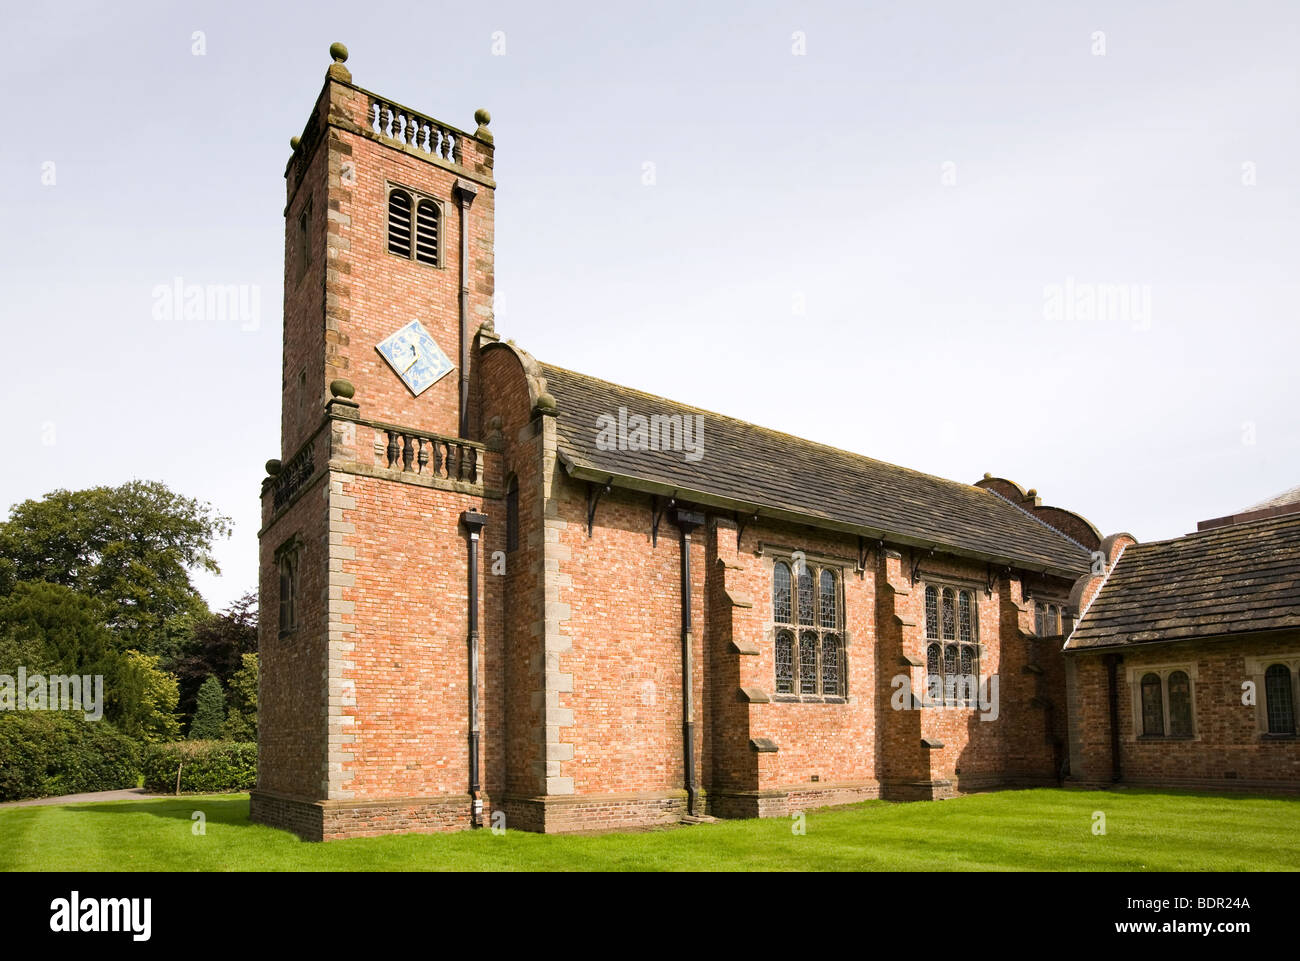 UK, England, Cheshire, Knutsford, Tabley House, St Peters Chapel, 1675 - Stock Image